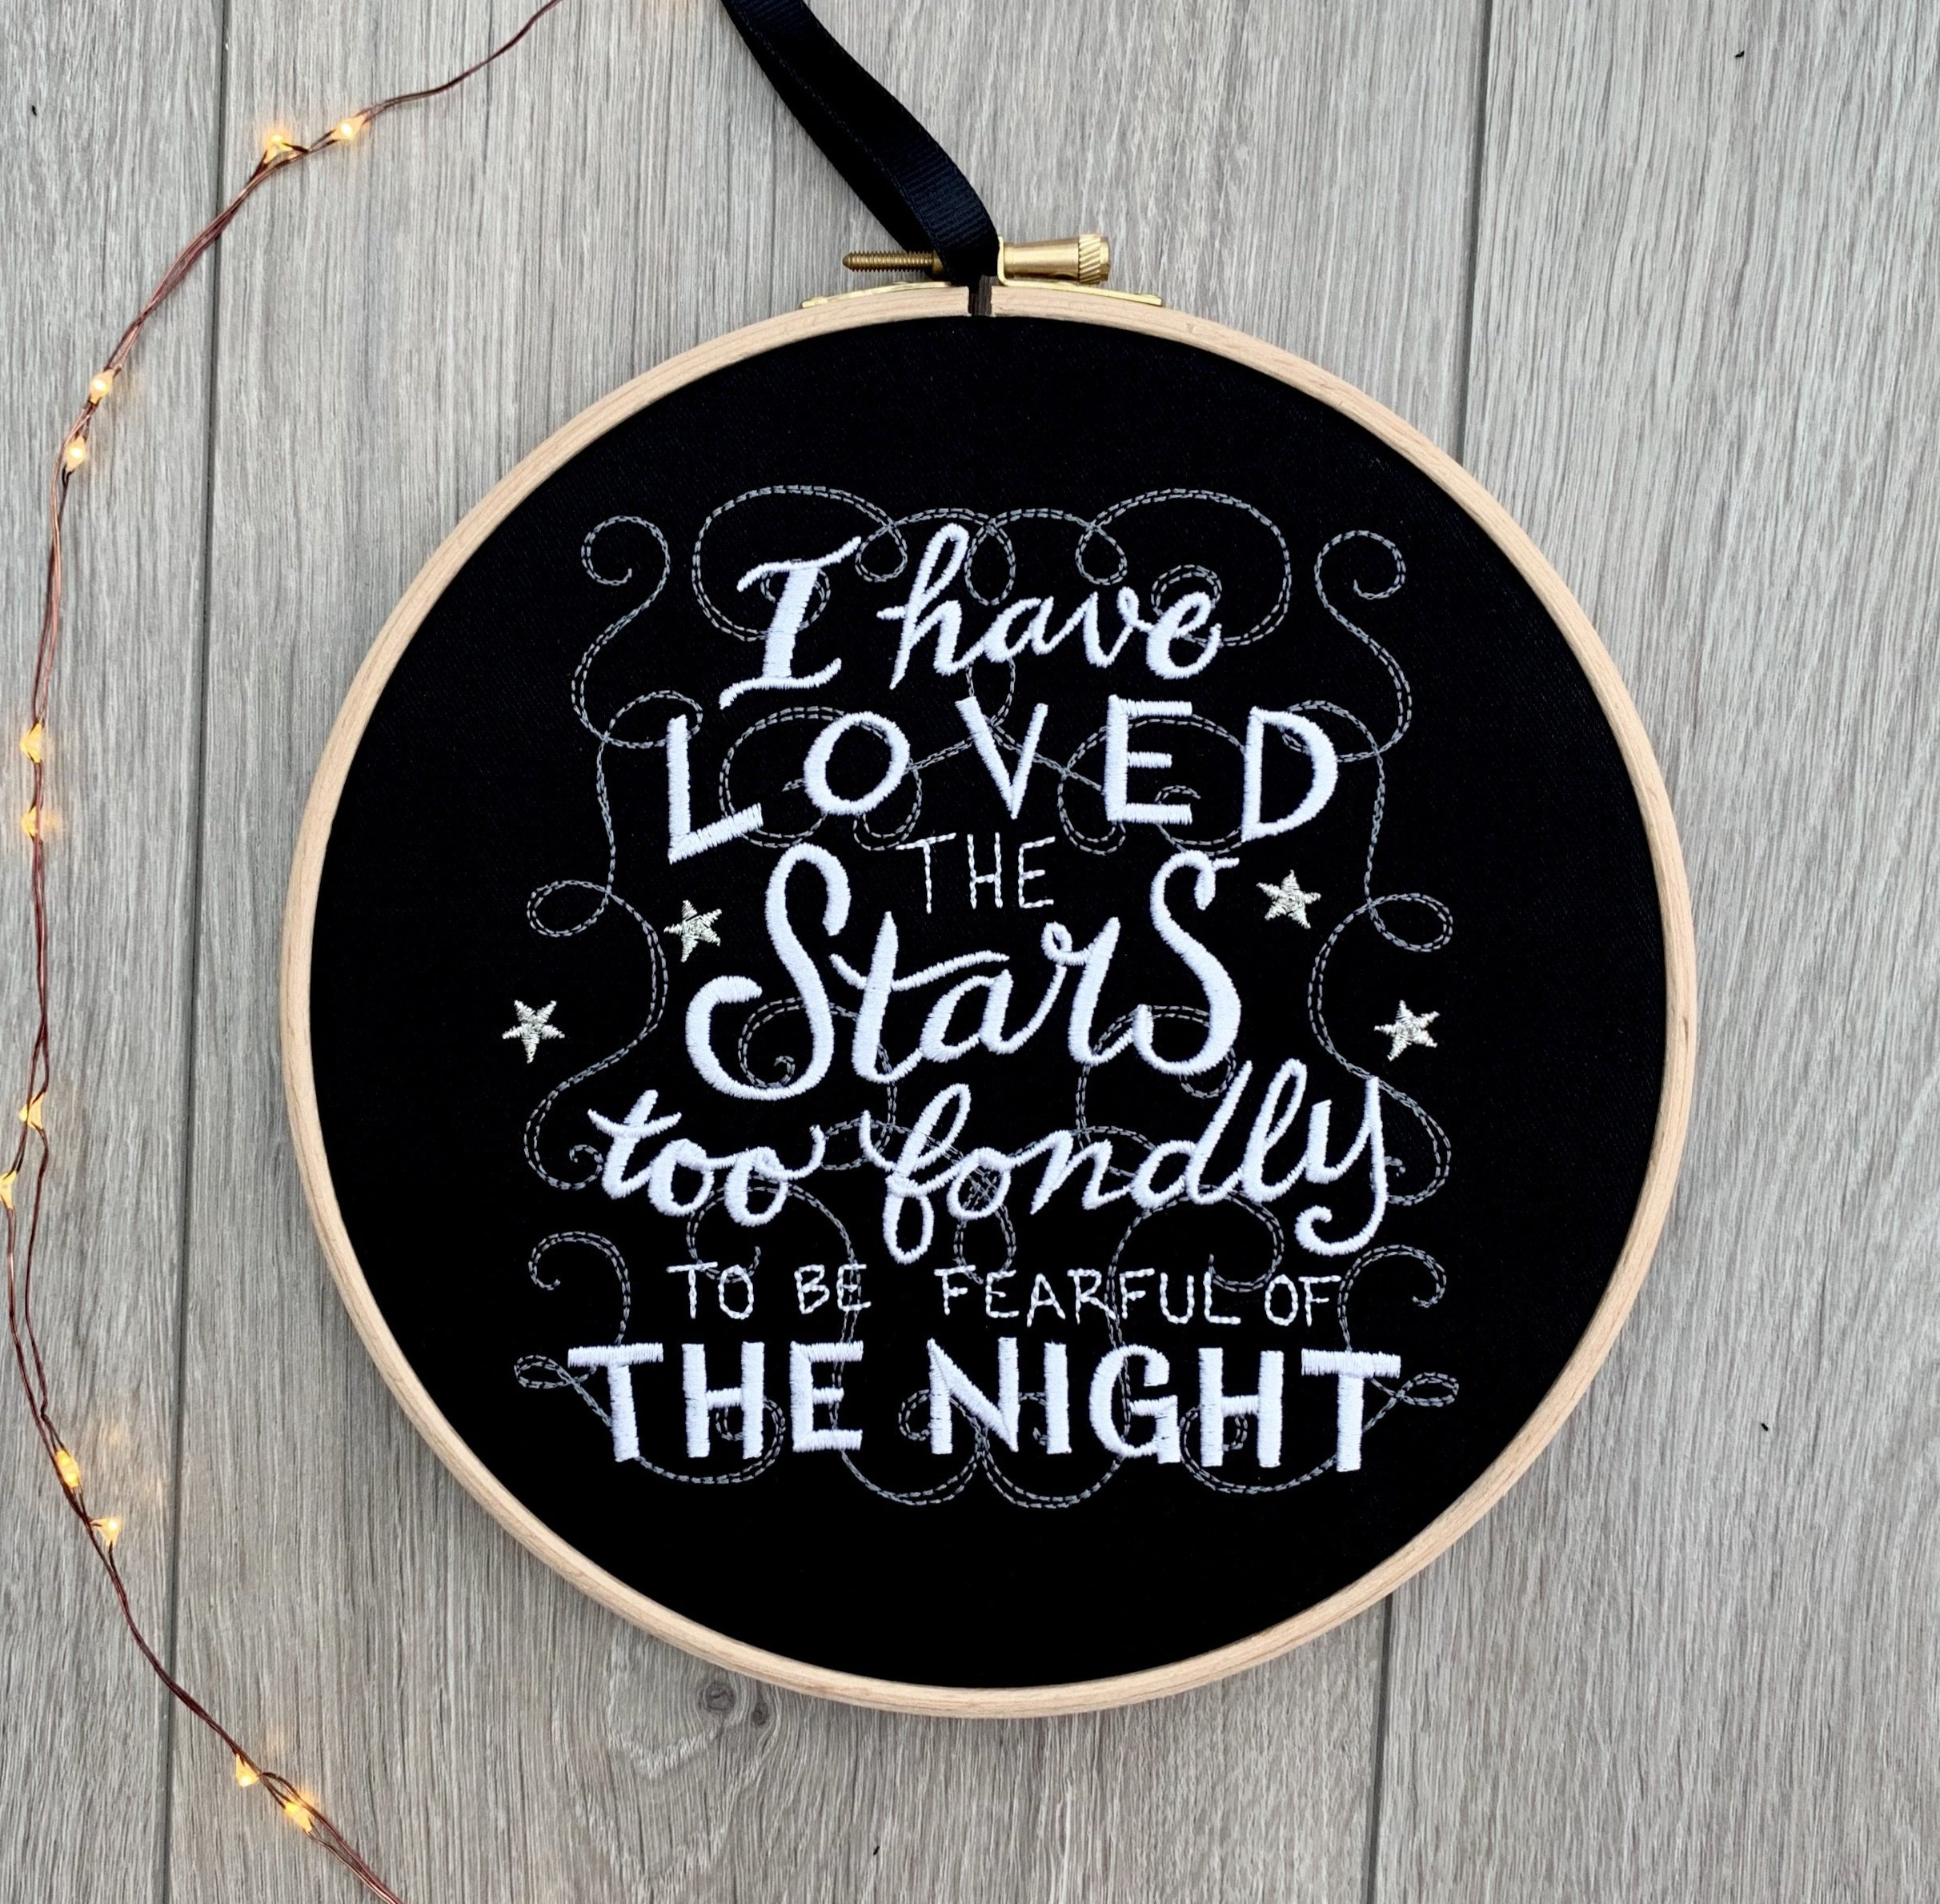 I have loved the stars too fondly to be fearful of the night, quote, Embroidery hoop art